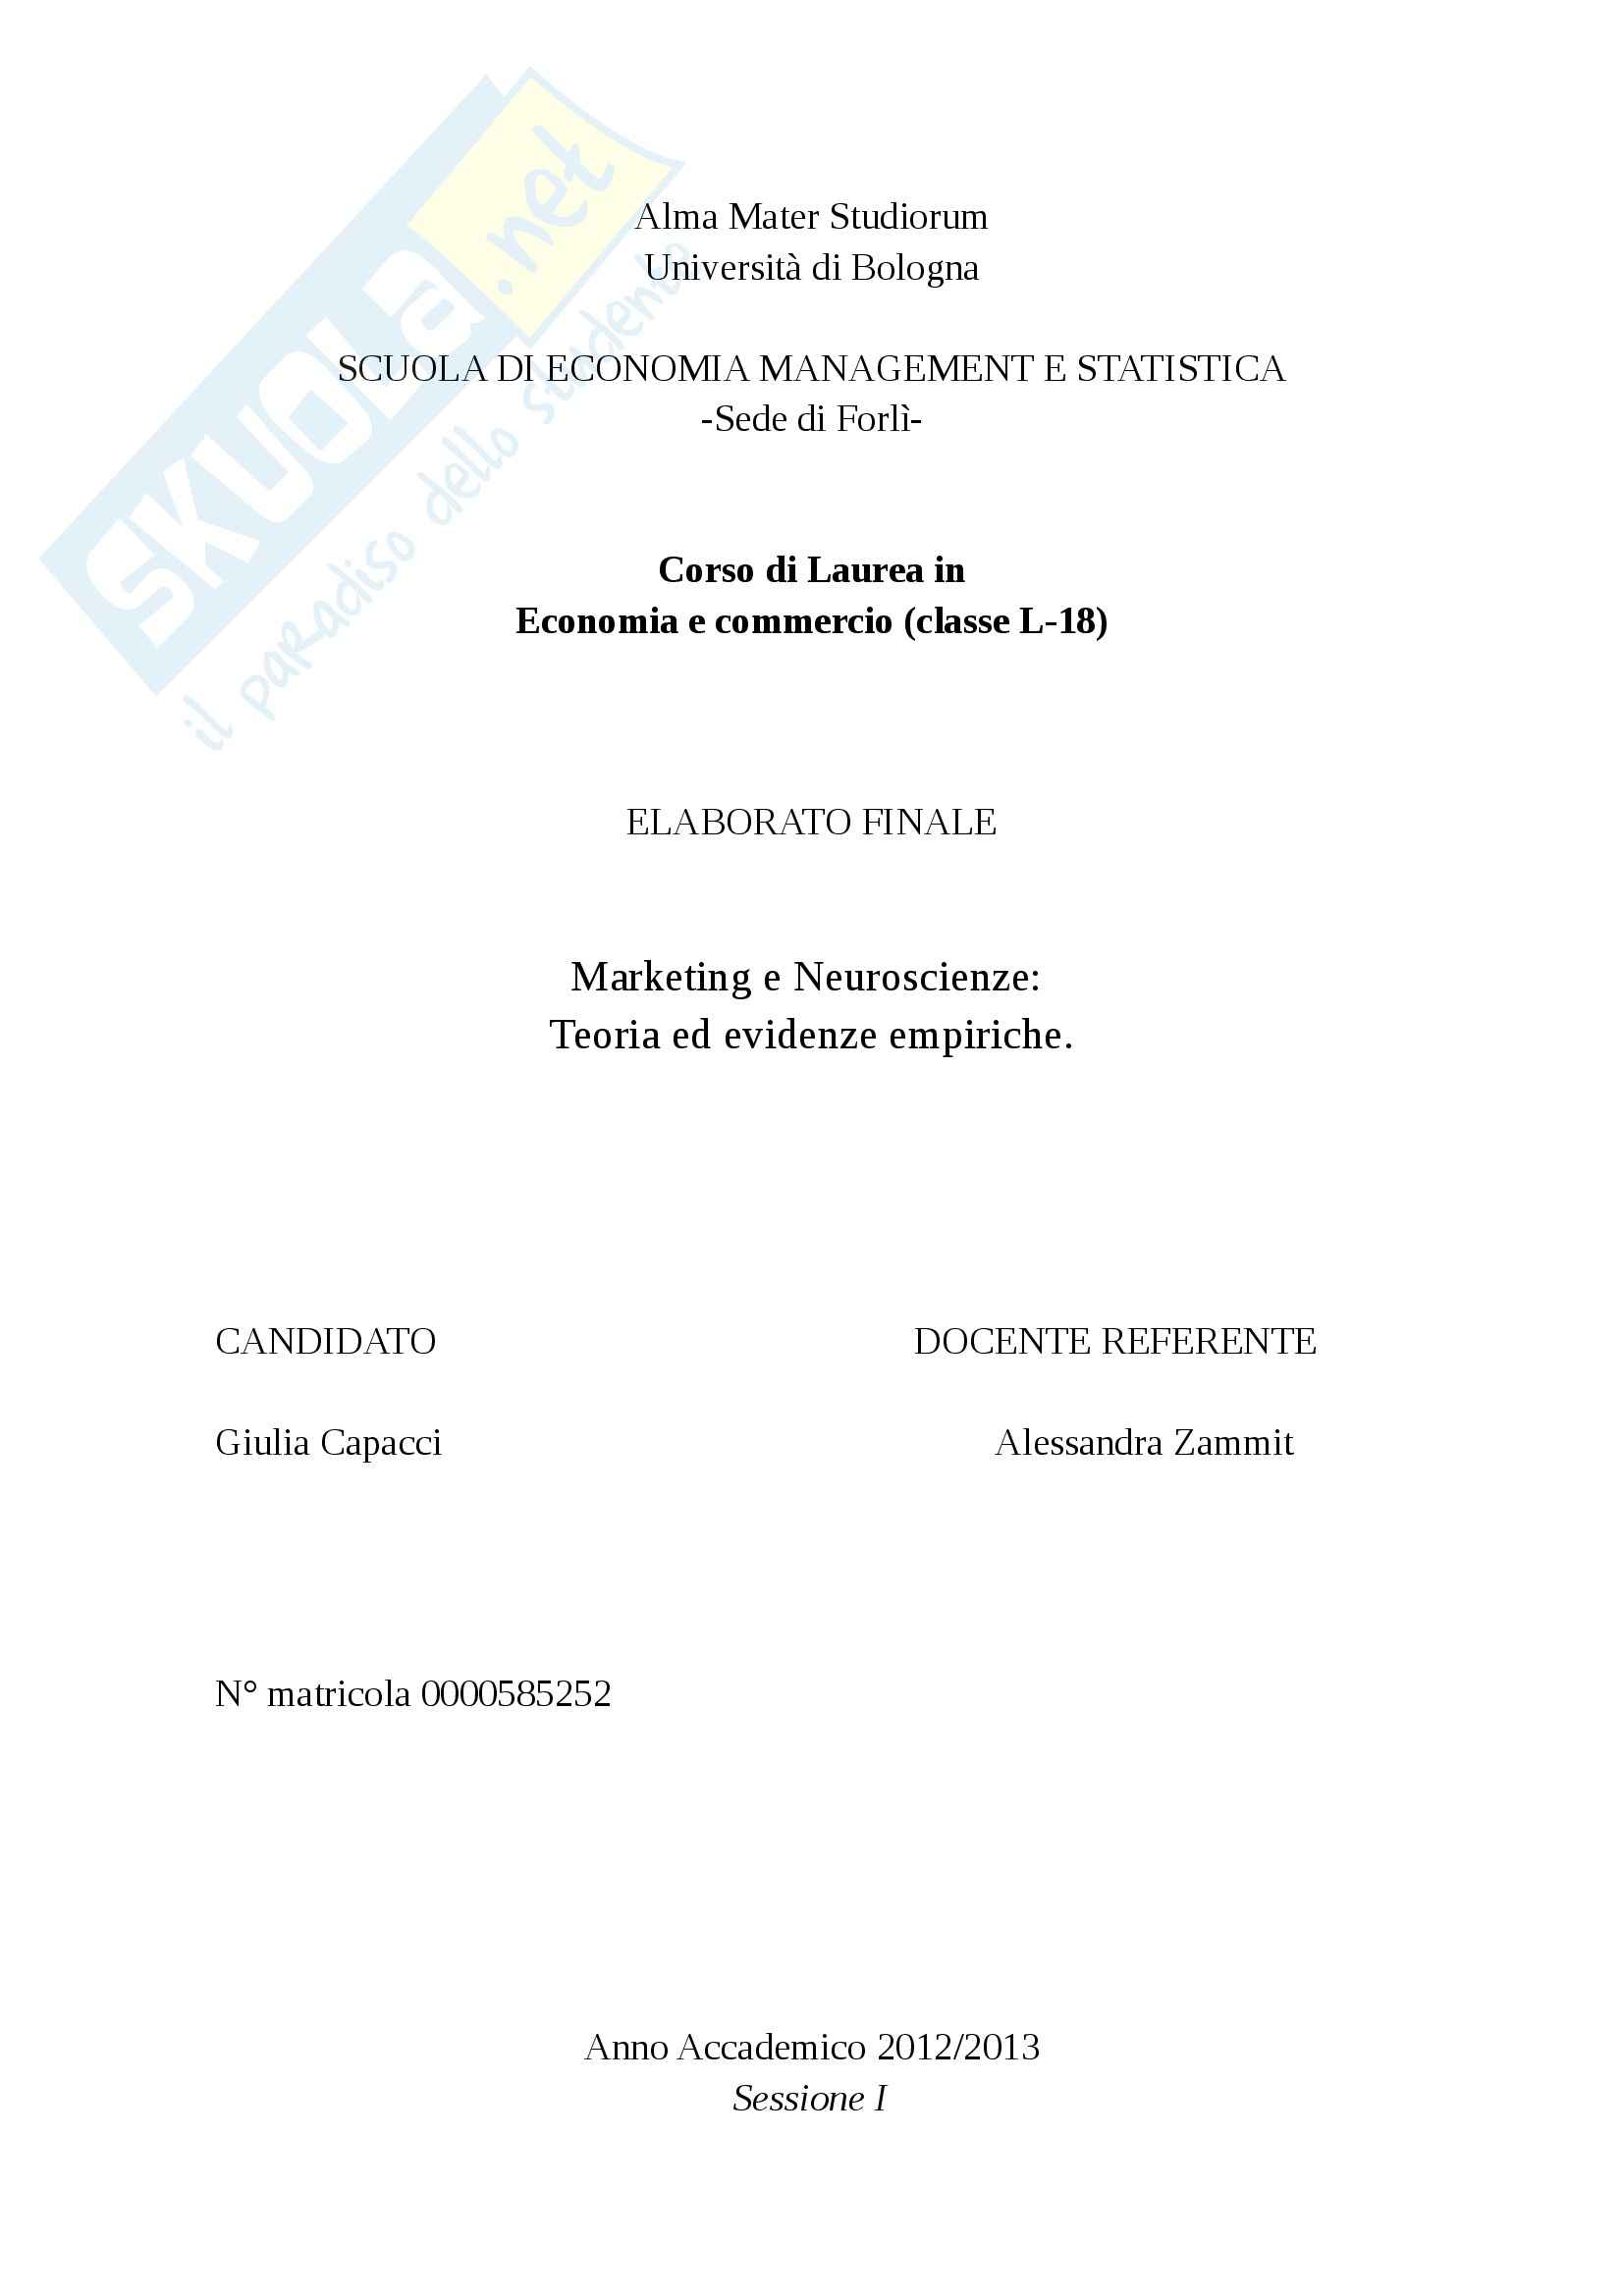 Tesi - Marketing e neuroscienze